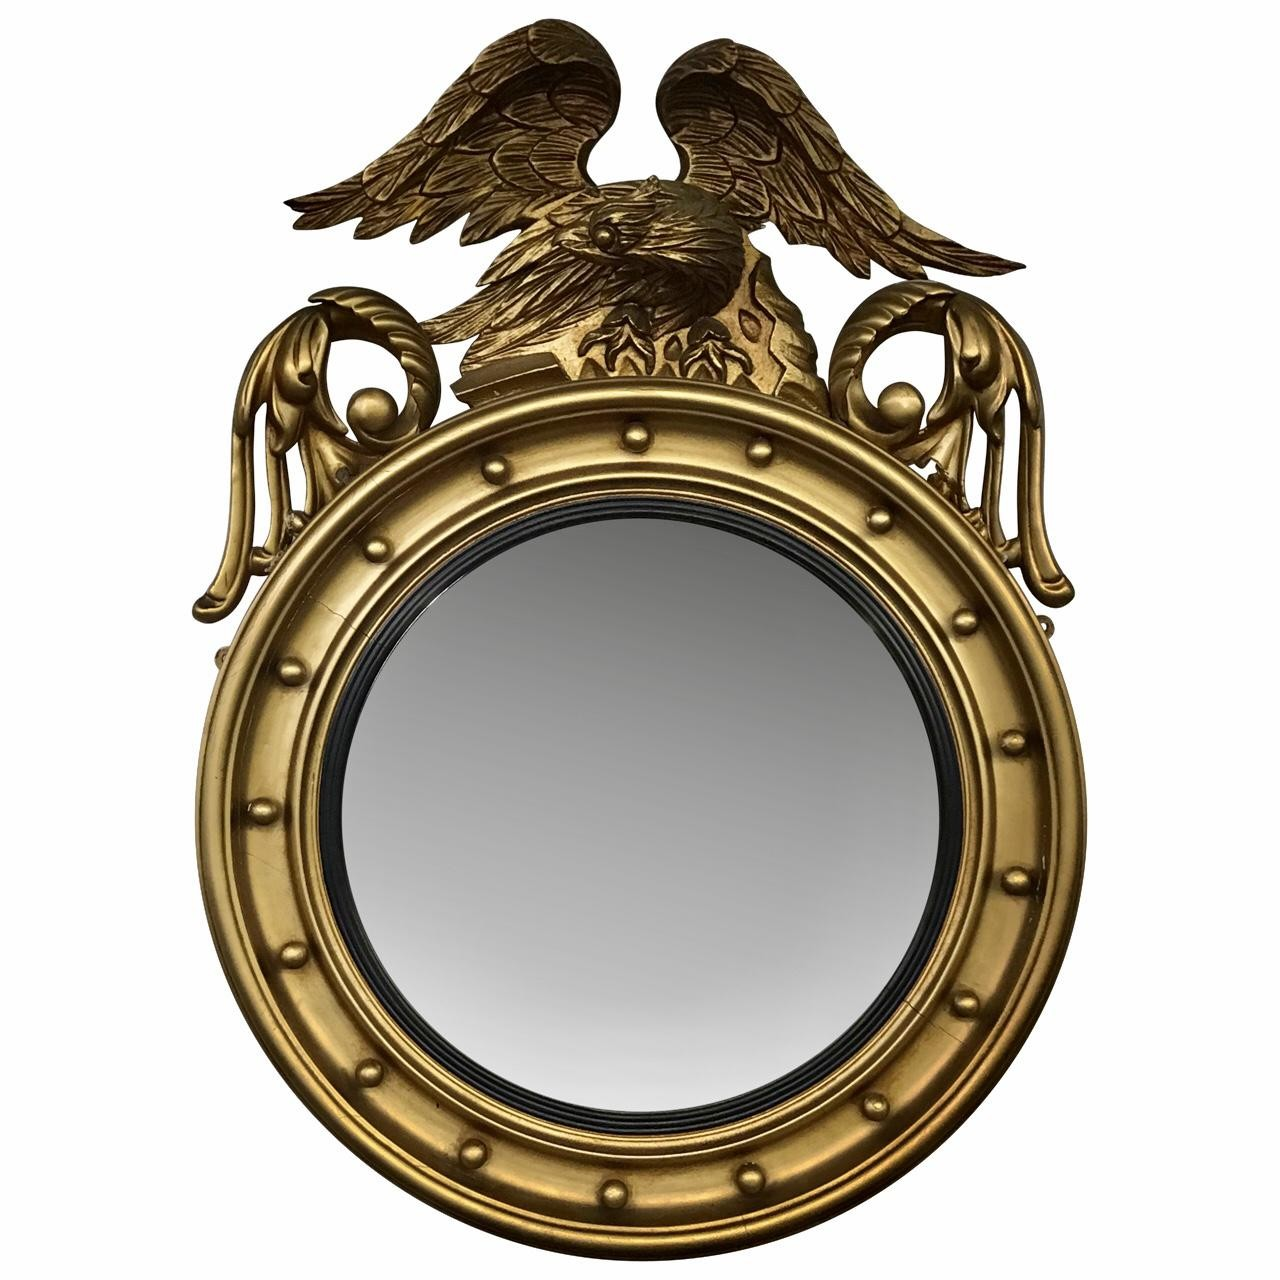 English Gilt Convex/Bullseye Mirror, Carved Eagle Top. c. 1900